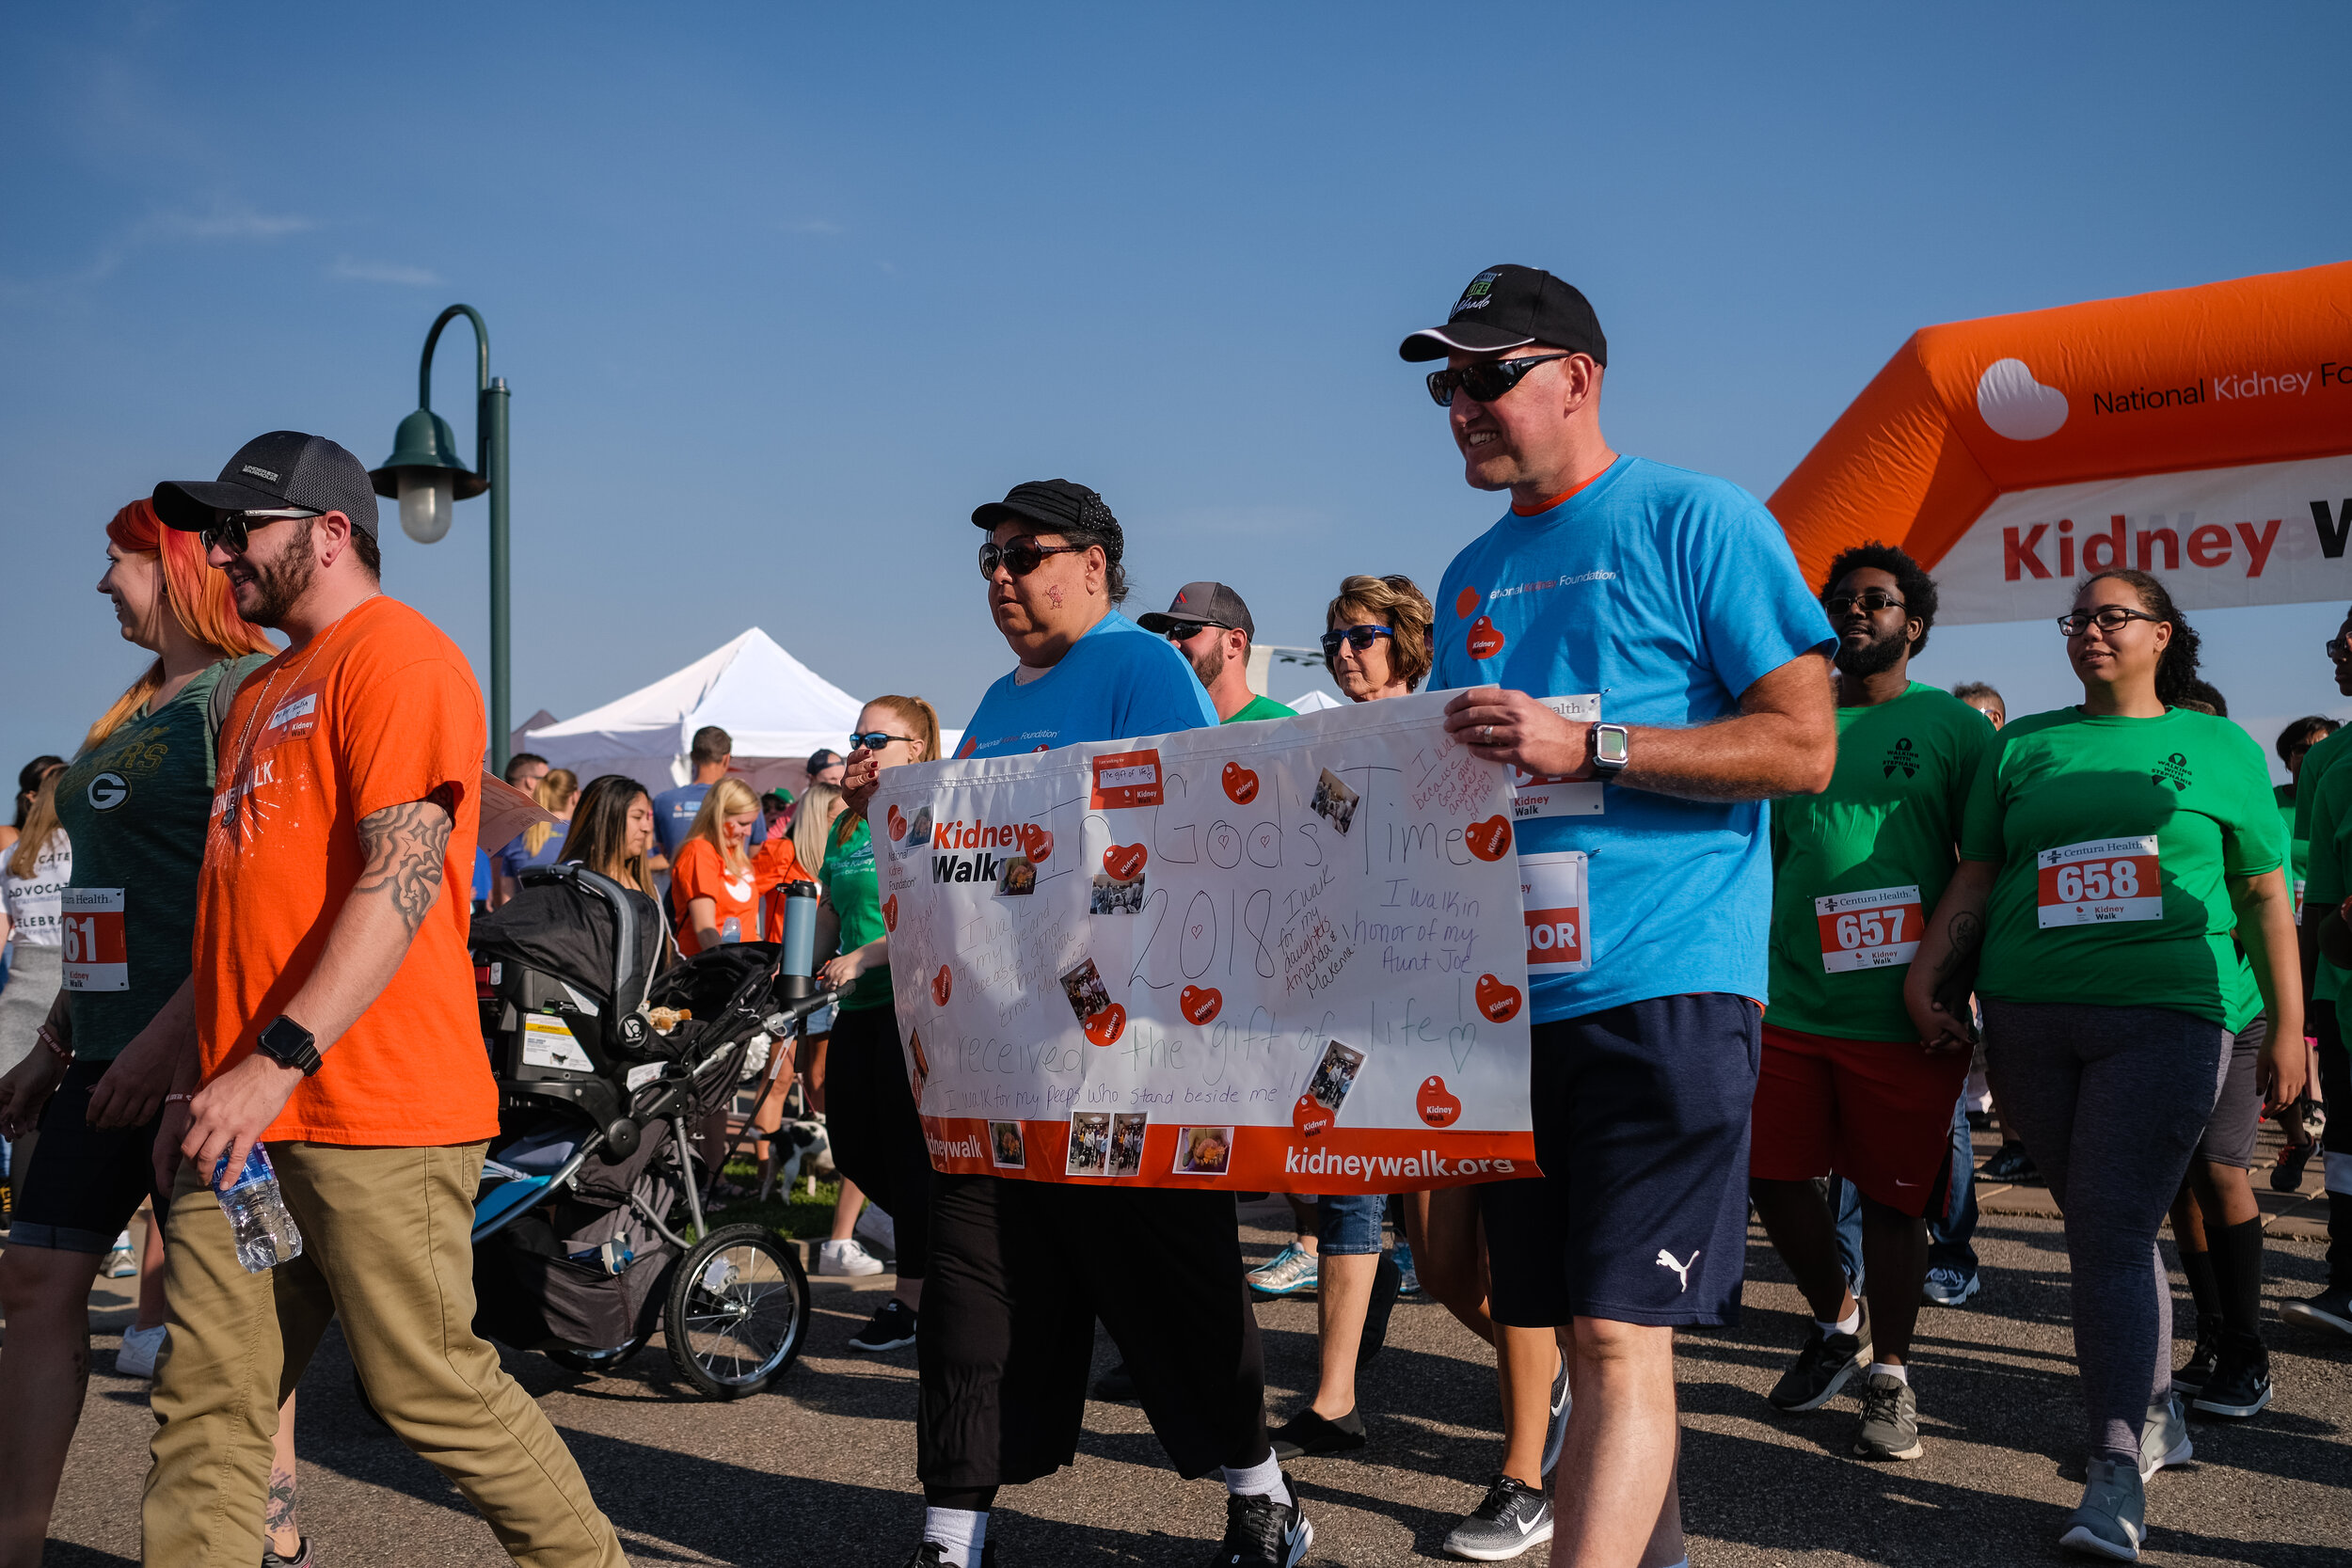 Denver Kidney Walk-72.jpg